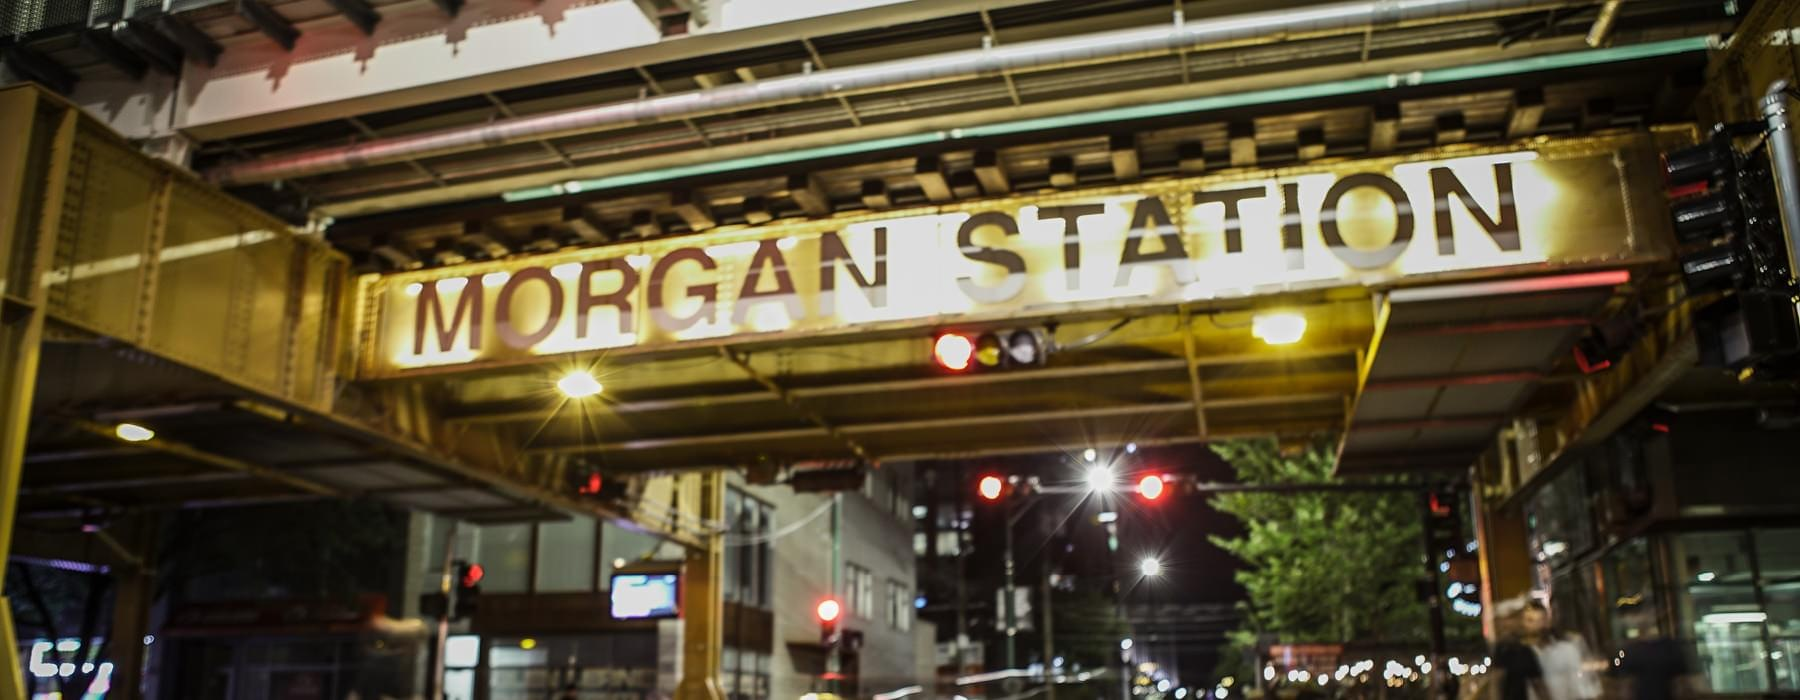 nearby Morgan Station entrance